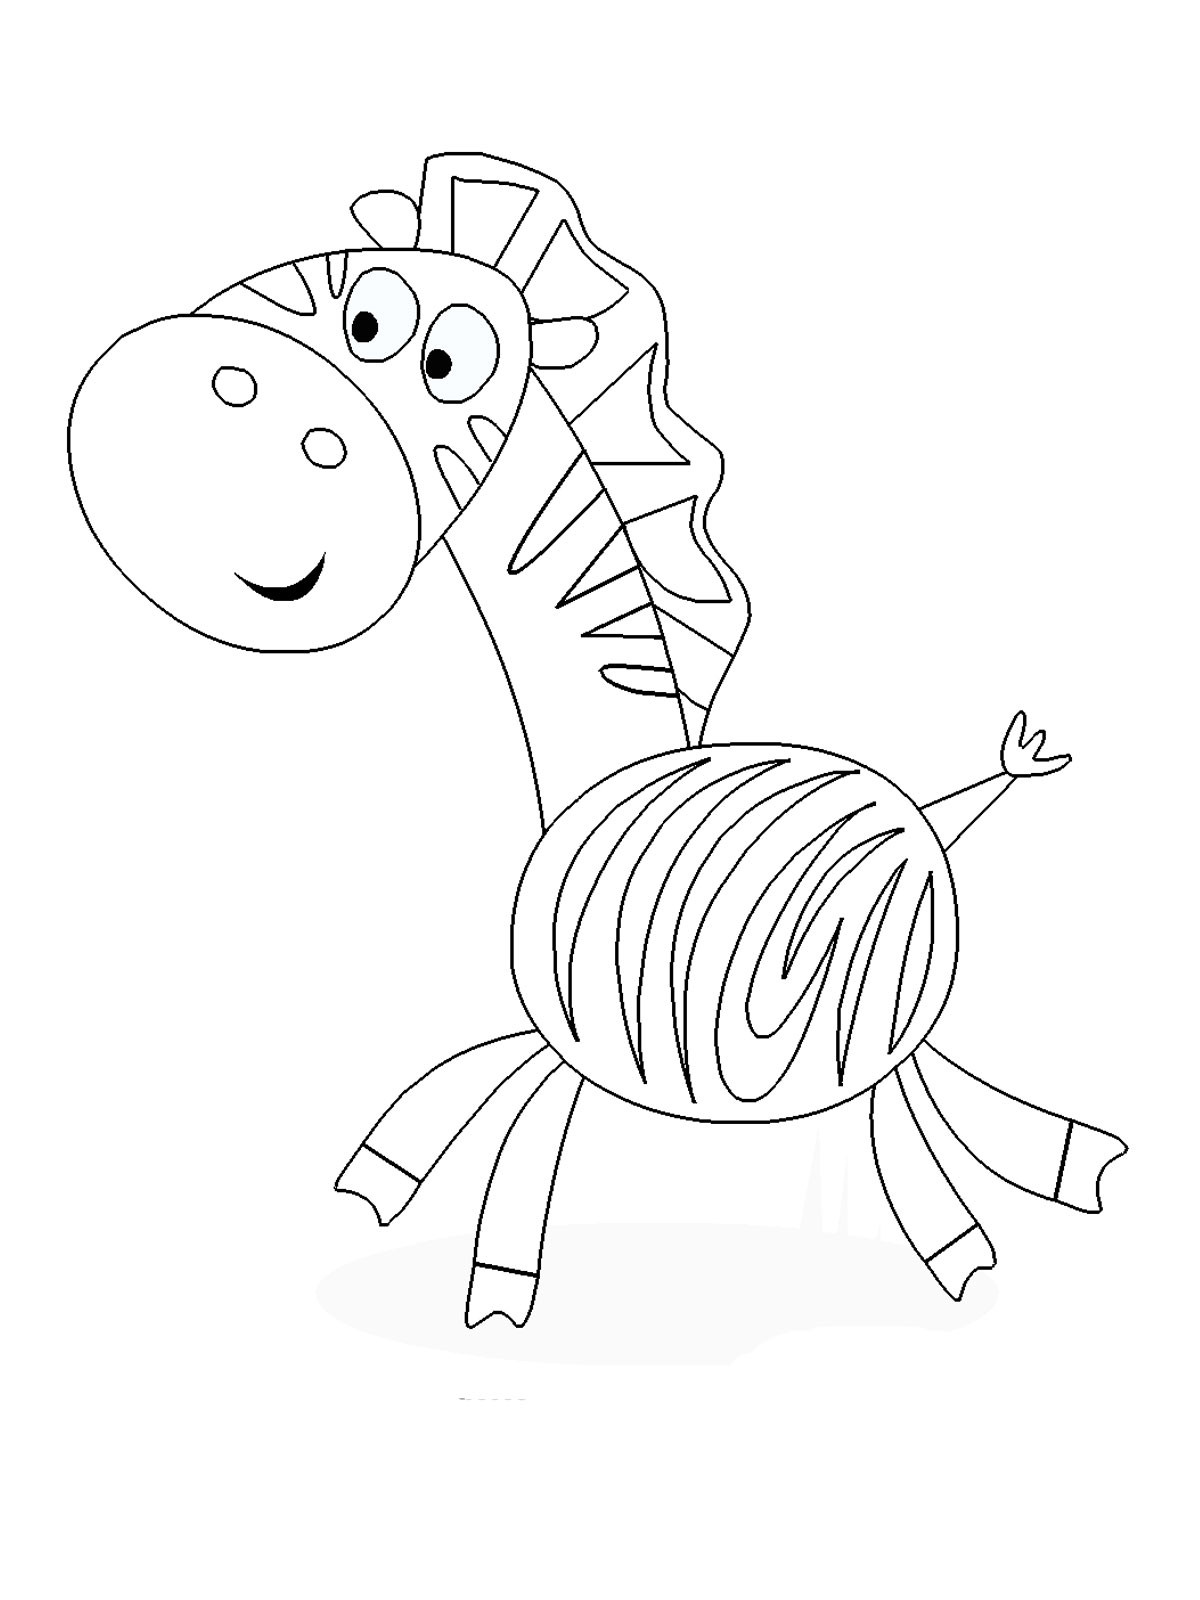 Kids Free Coloring Pages  Printable coloring pages for kids